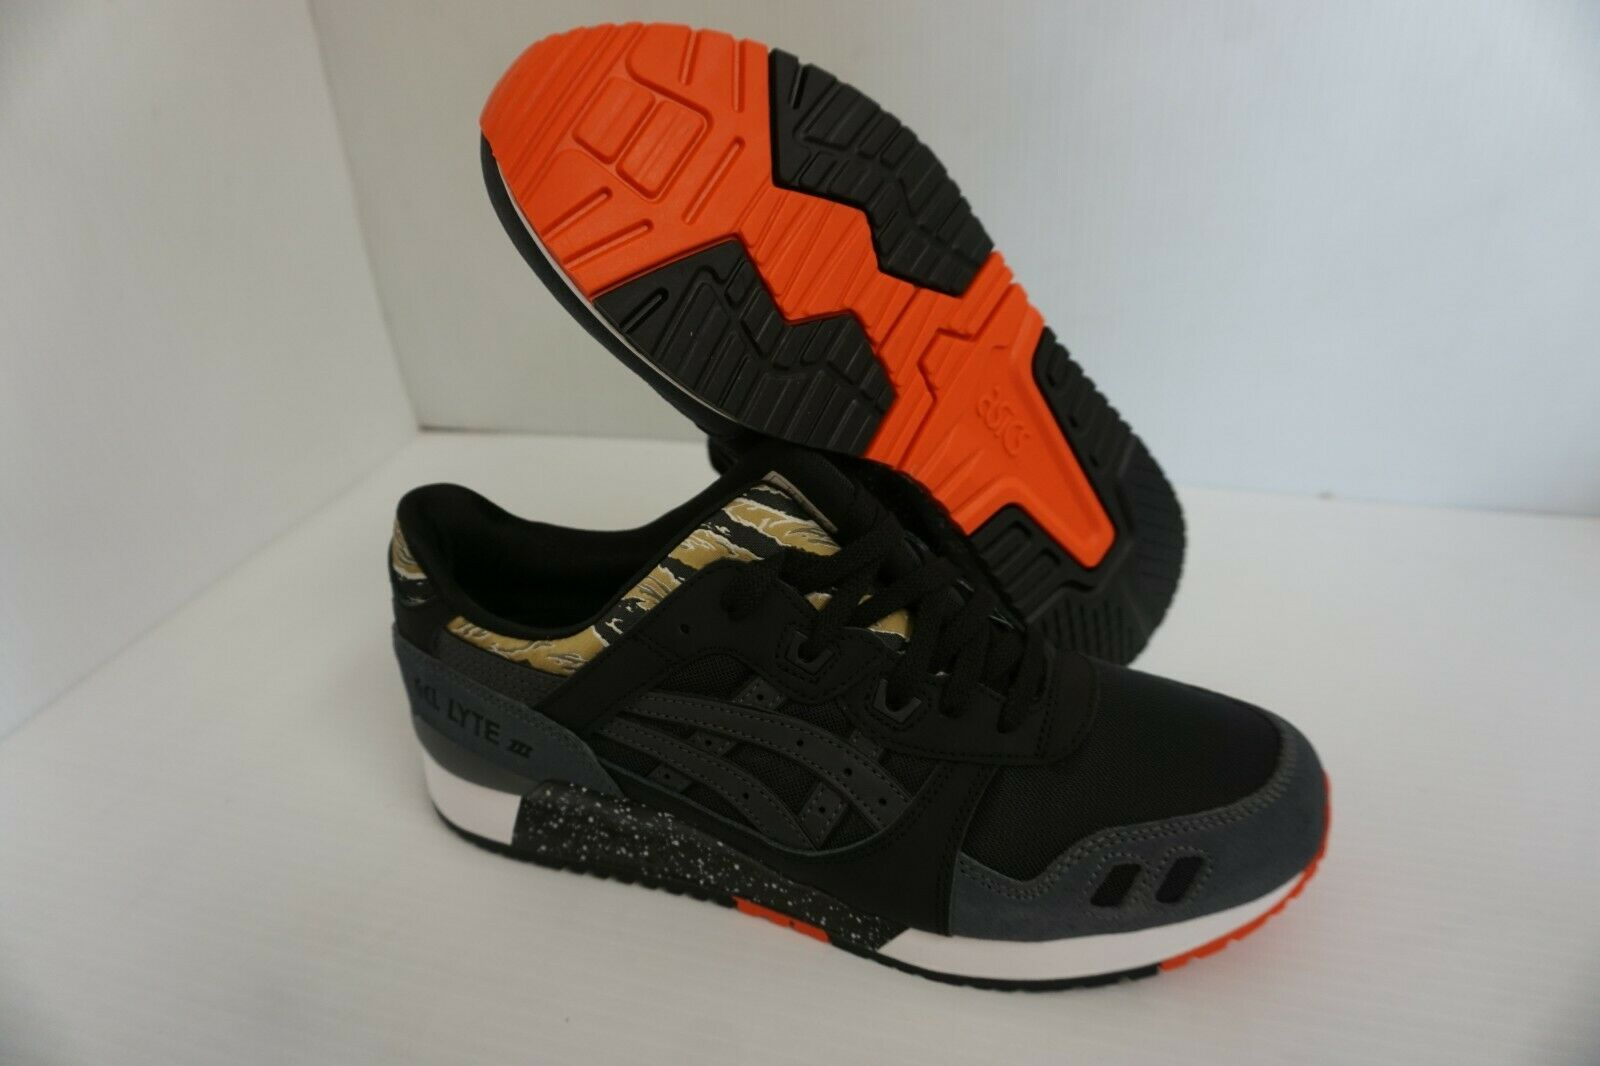 Asics mens gel lyte iii running shoes tiger black orange size 11 us